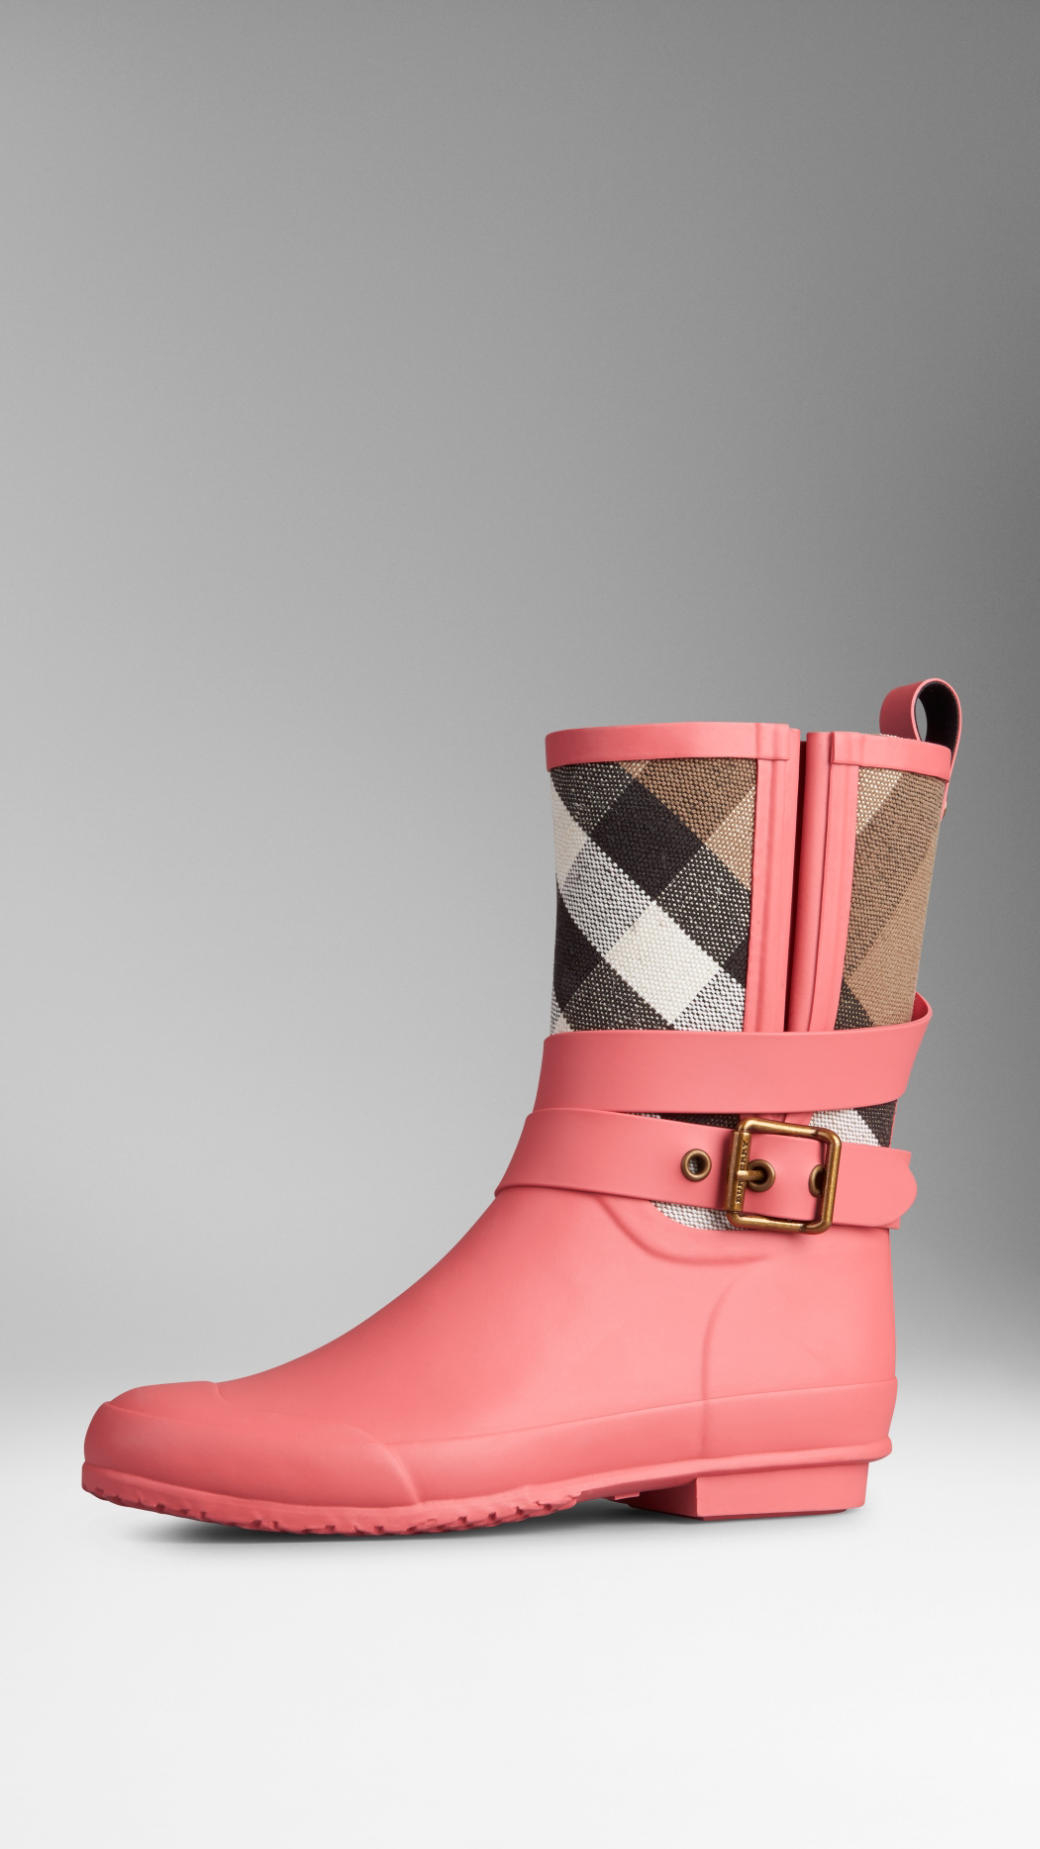 Lyst Burberry Check Detail Belted Rain Boots In Pink